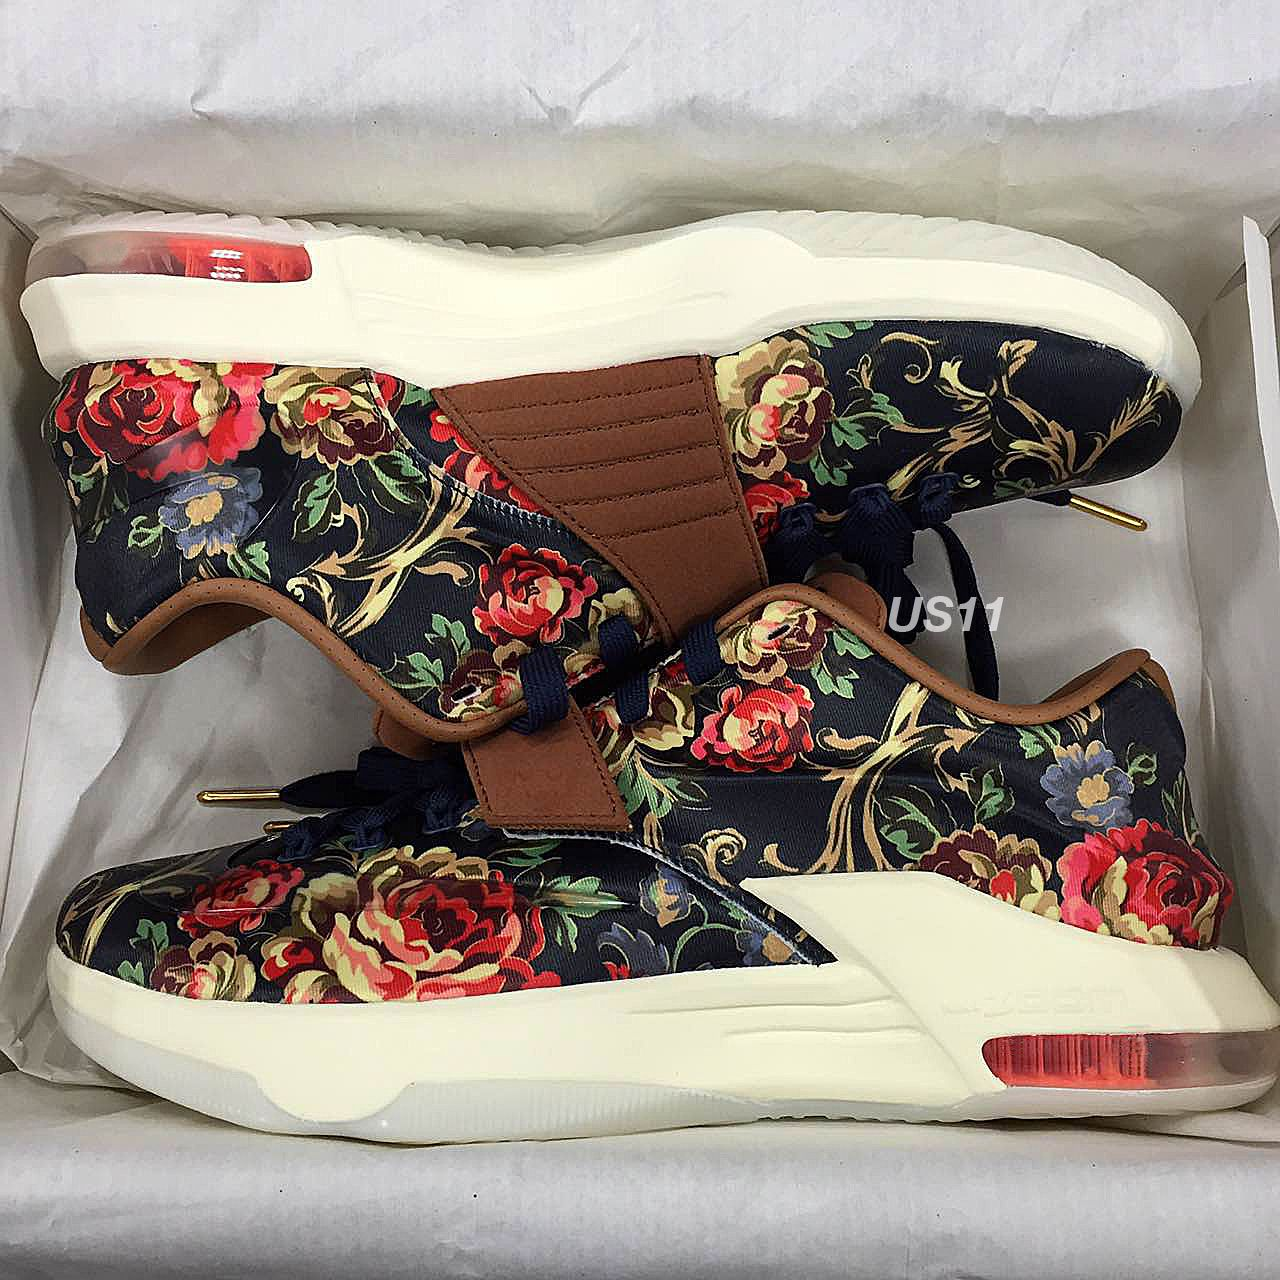 "reputable site 368e0 6d470 Nike KD VII EXT ""Floral"" (New Preview Pictures)"